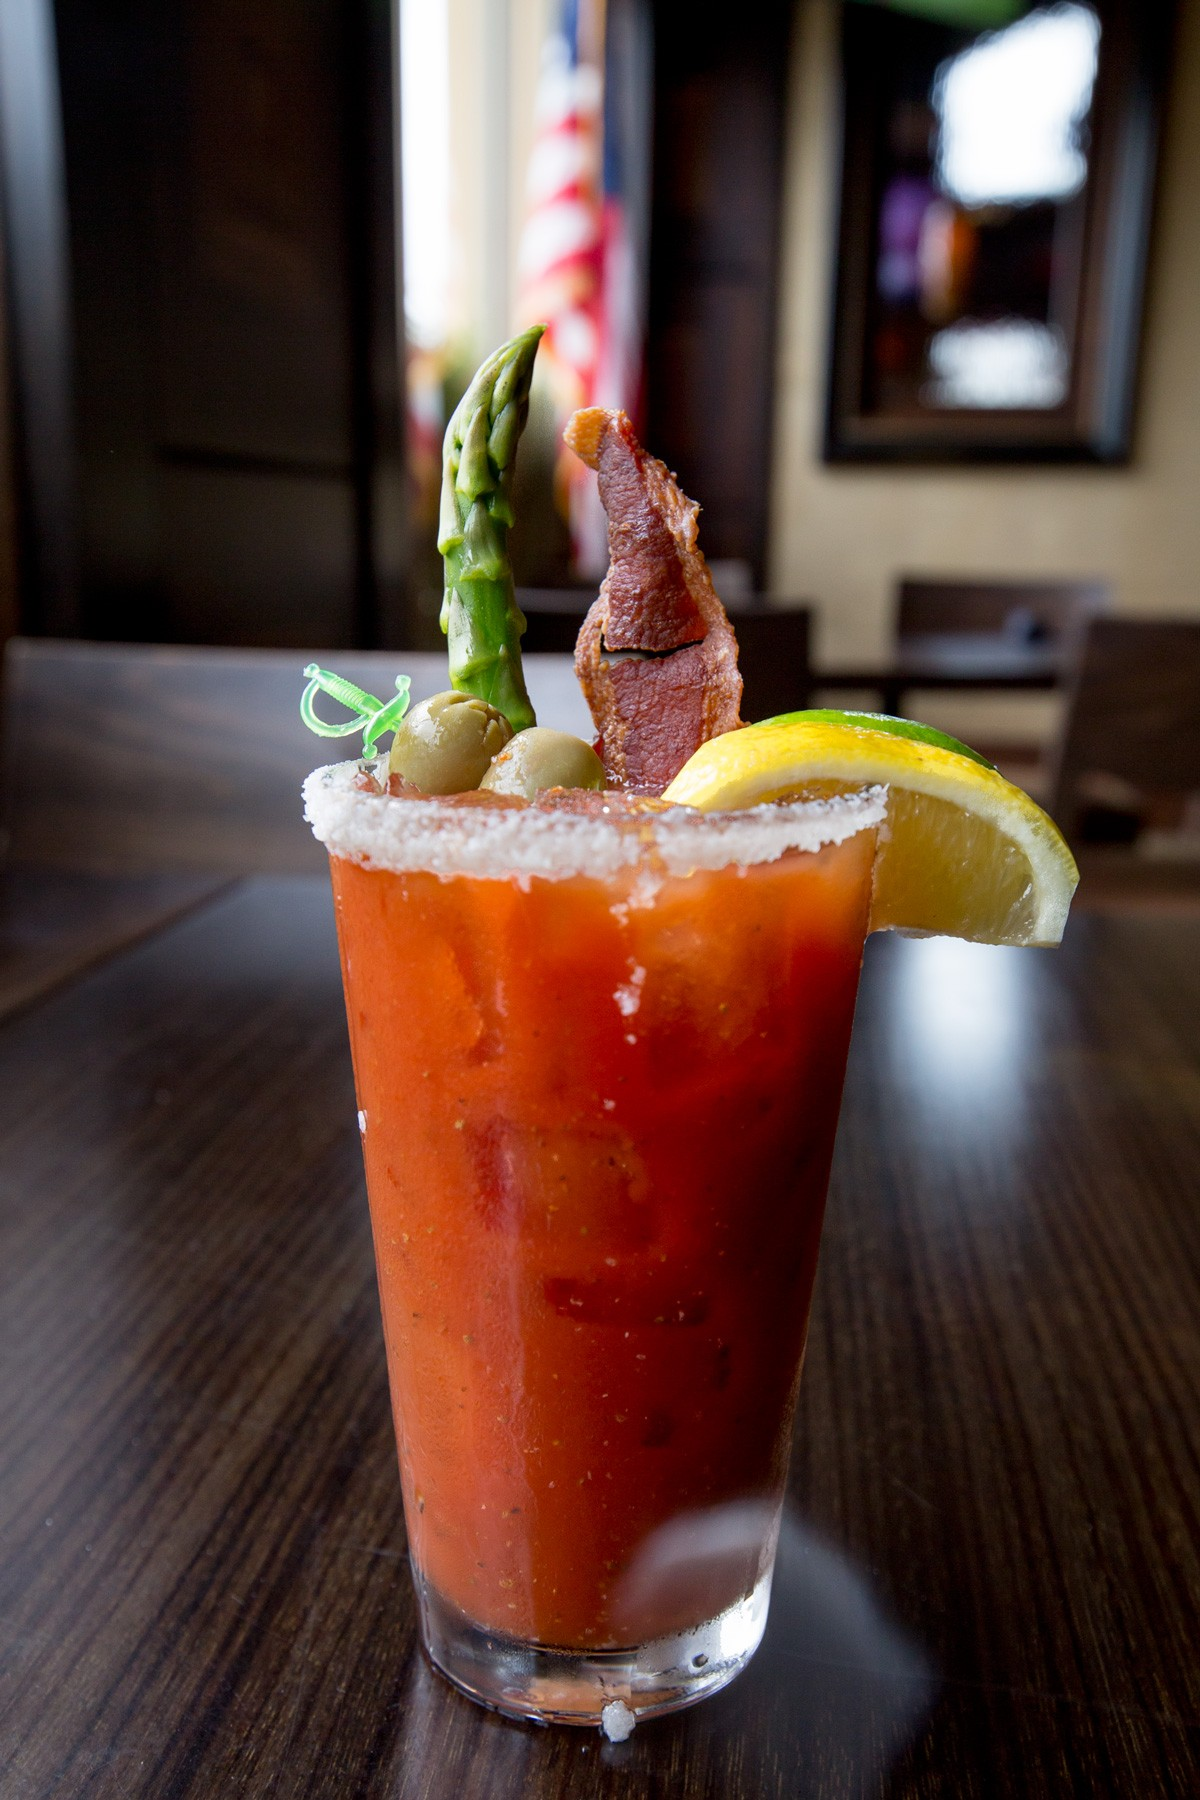 The Best Boozy Brunches in Orange County Impress With Great